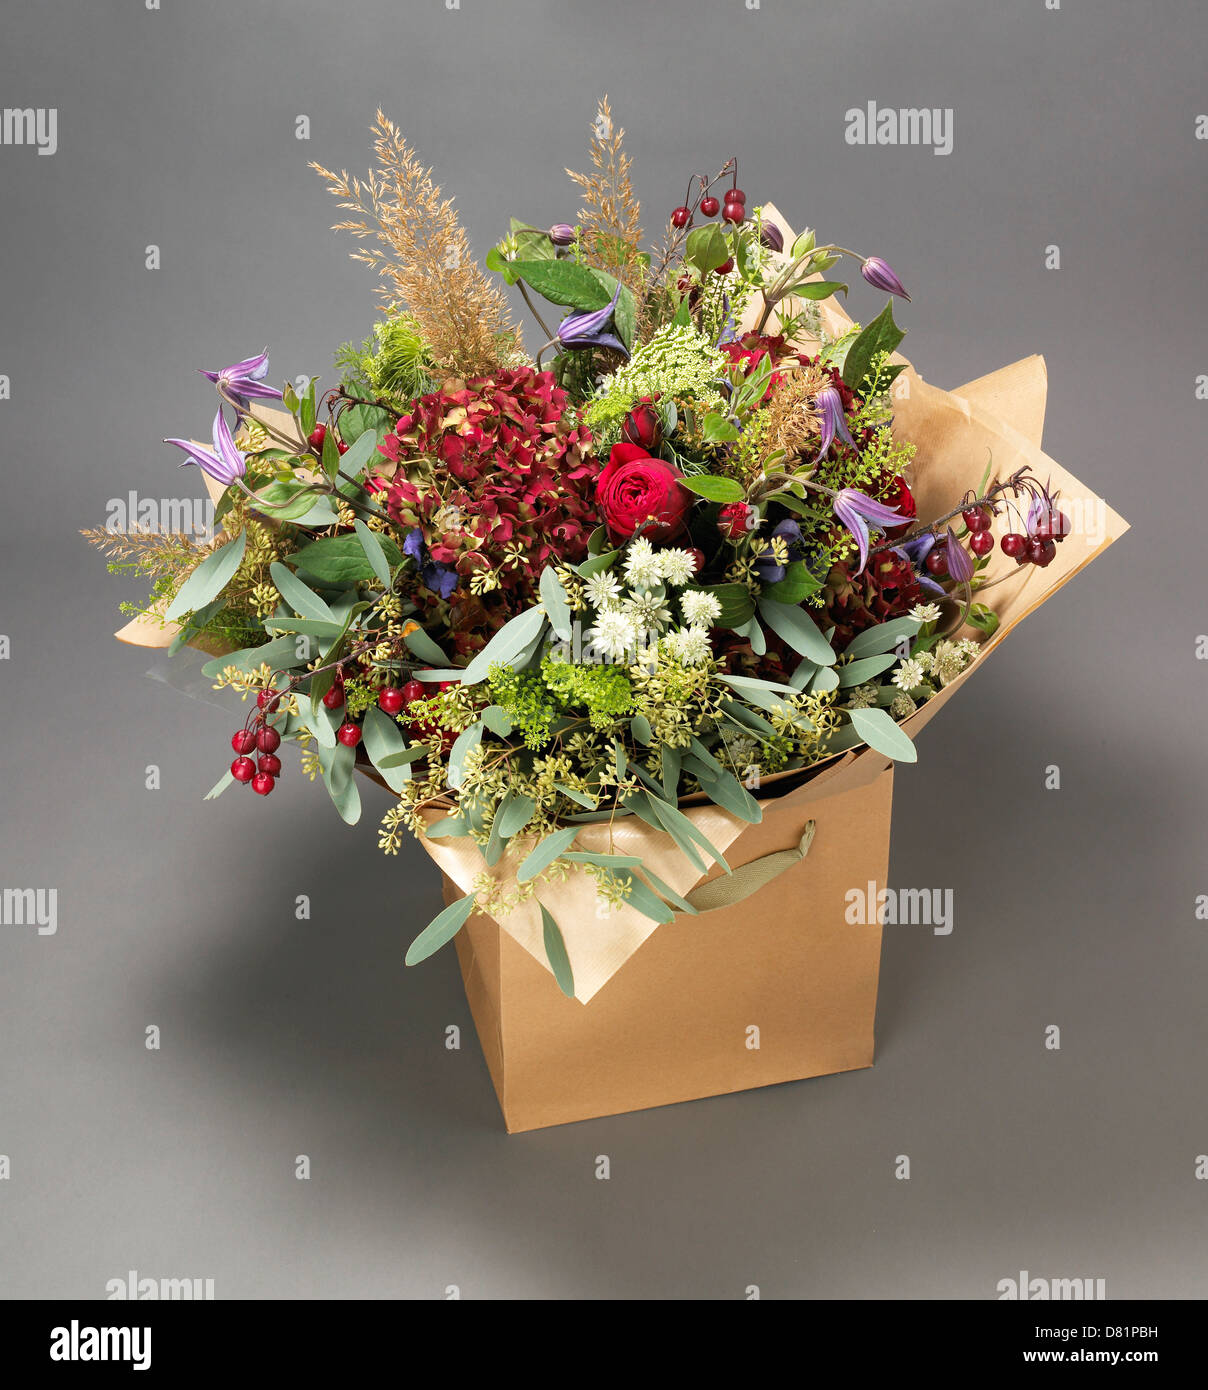 Large bunch of flowers including roses and meadow flowers displayed in a cardboard box on a grey background - Stock Image